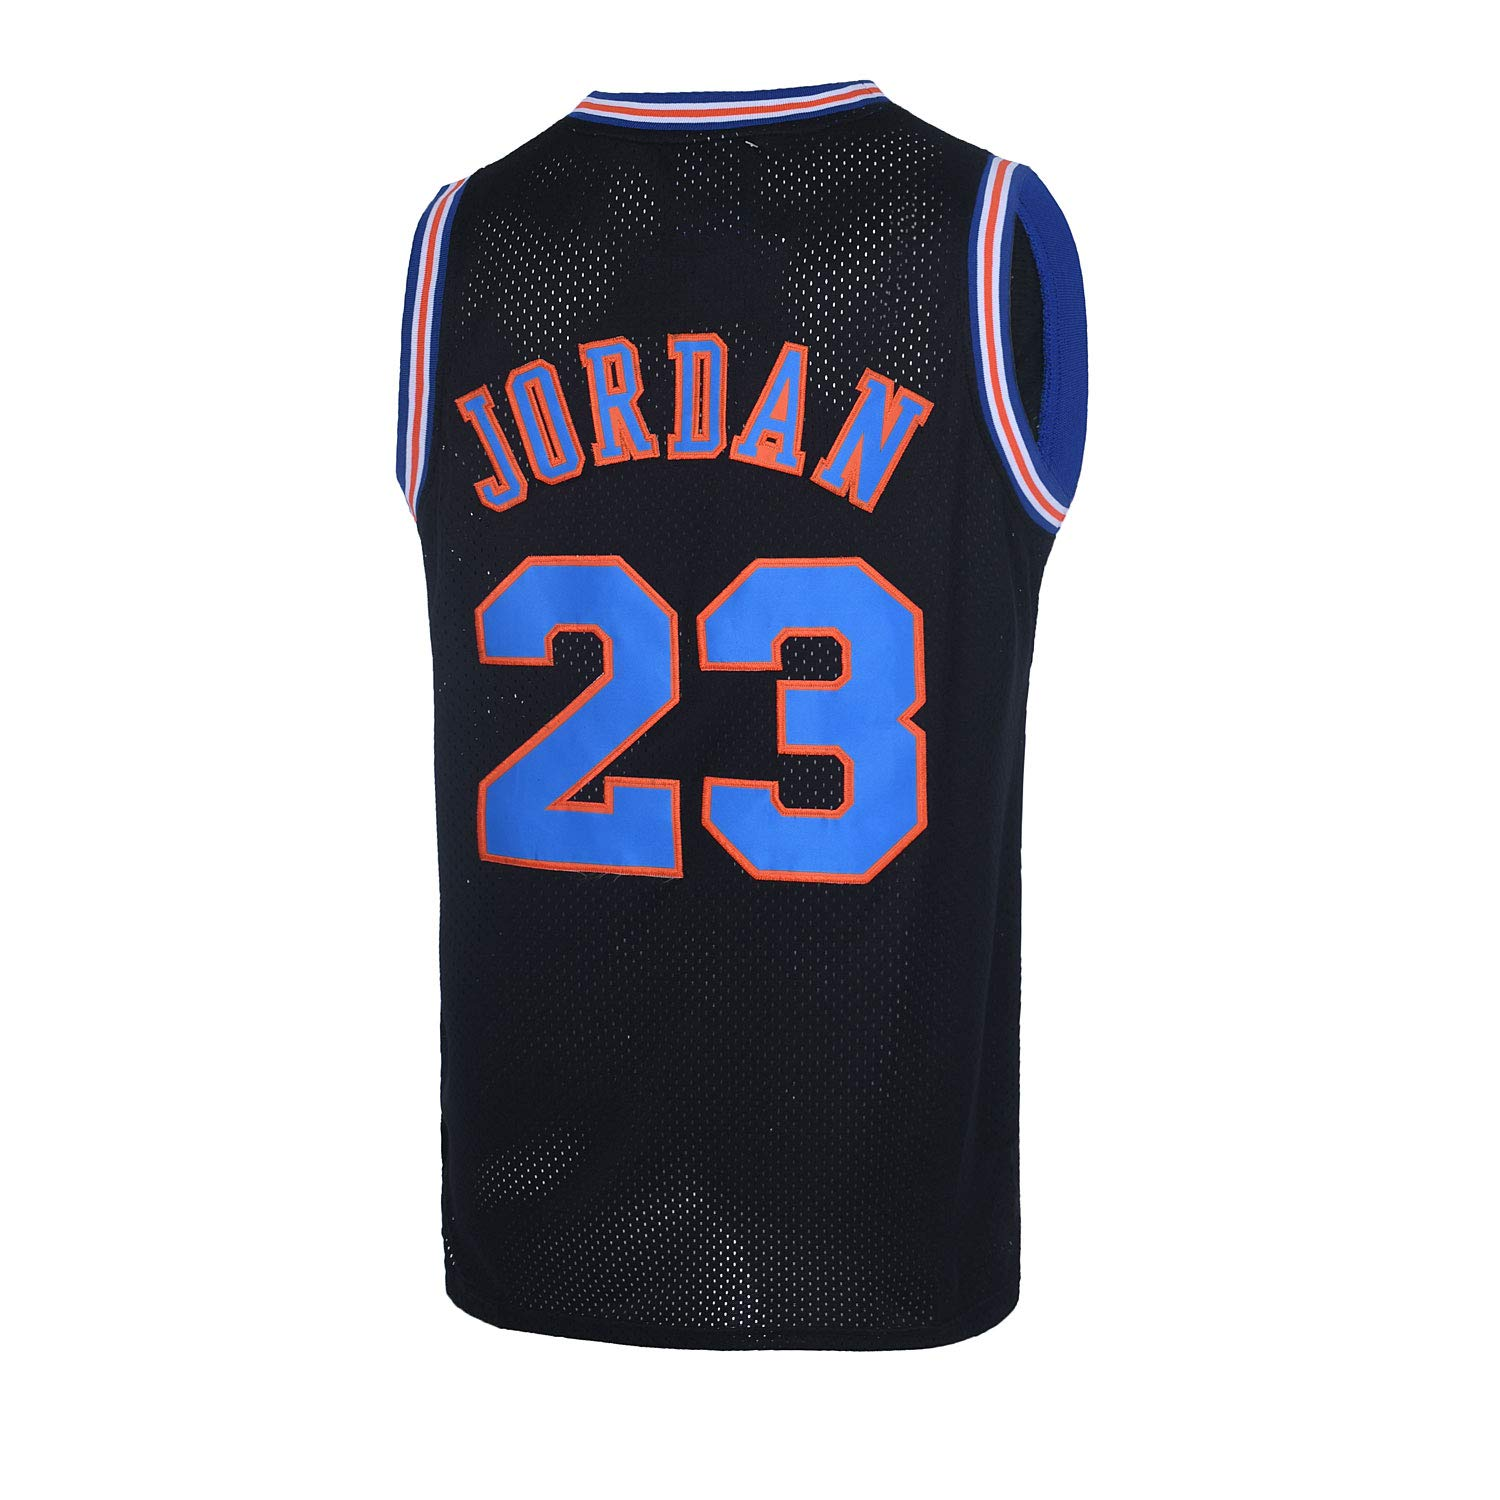 CAIYOO Mens 23# Space Movie Jersey Basketball Jersey S-3XL White/Black/Blue